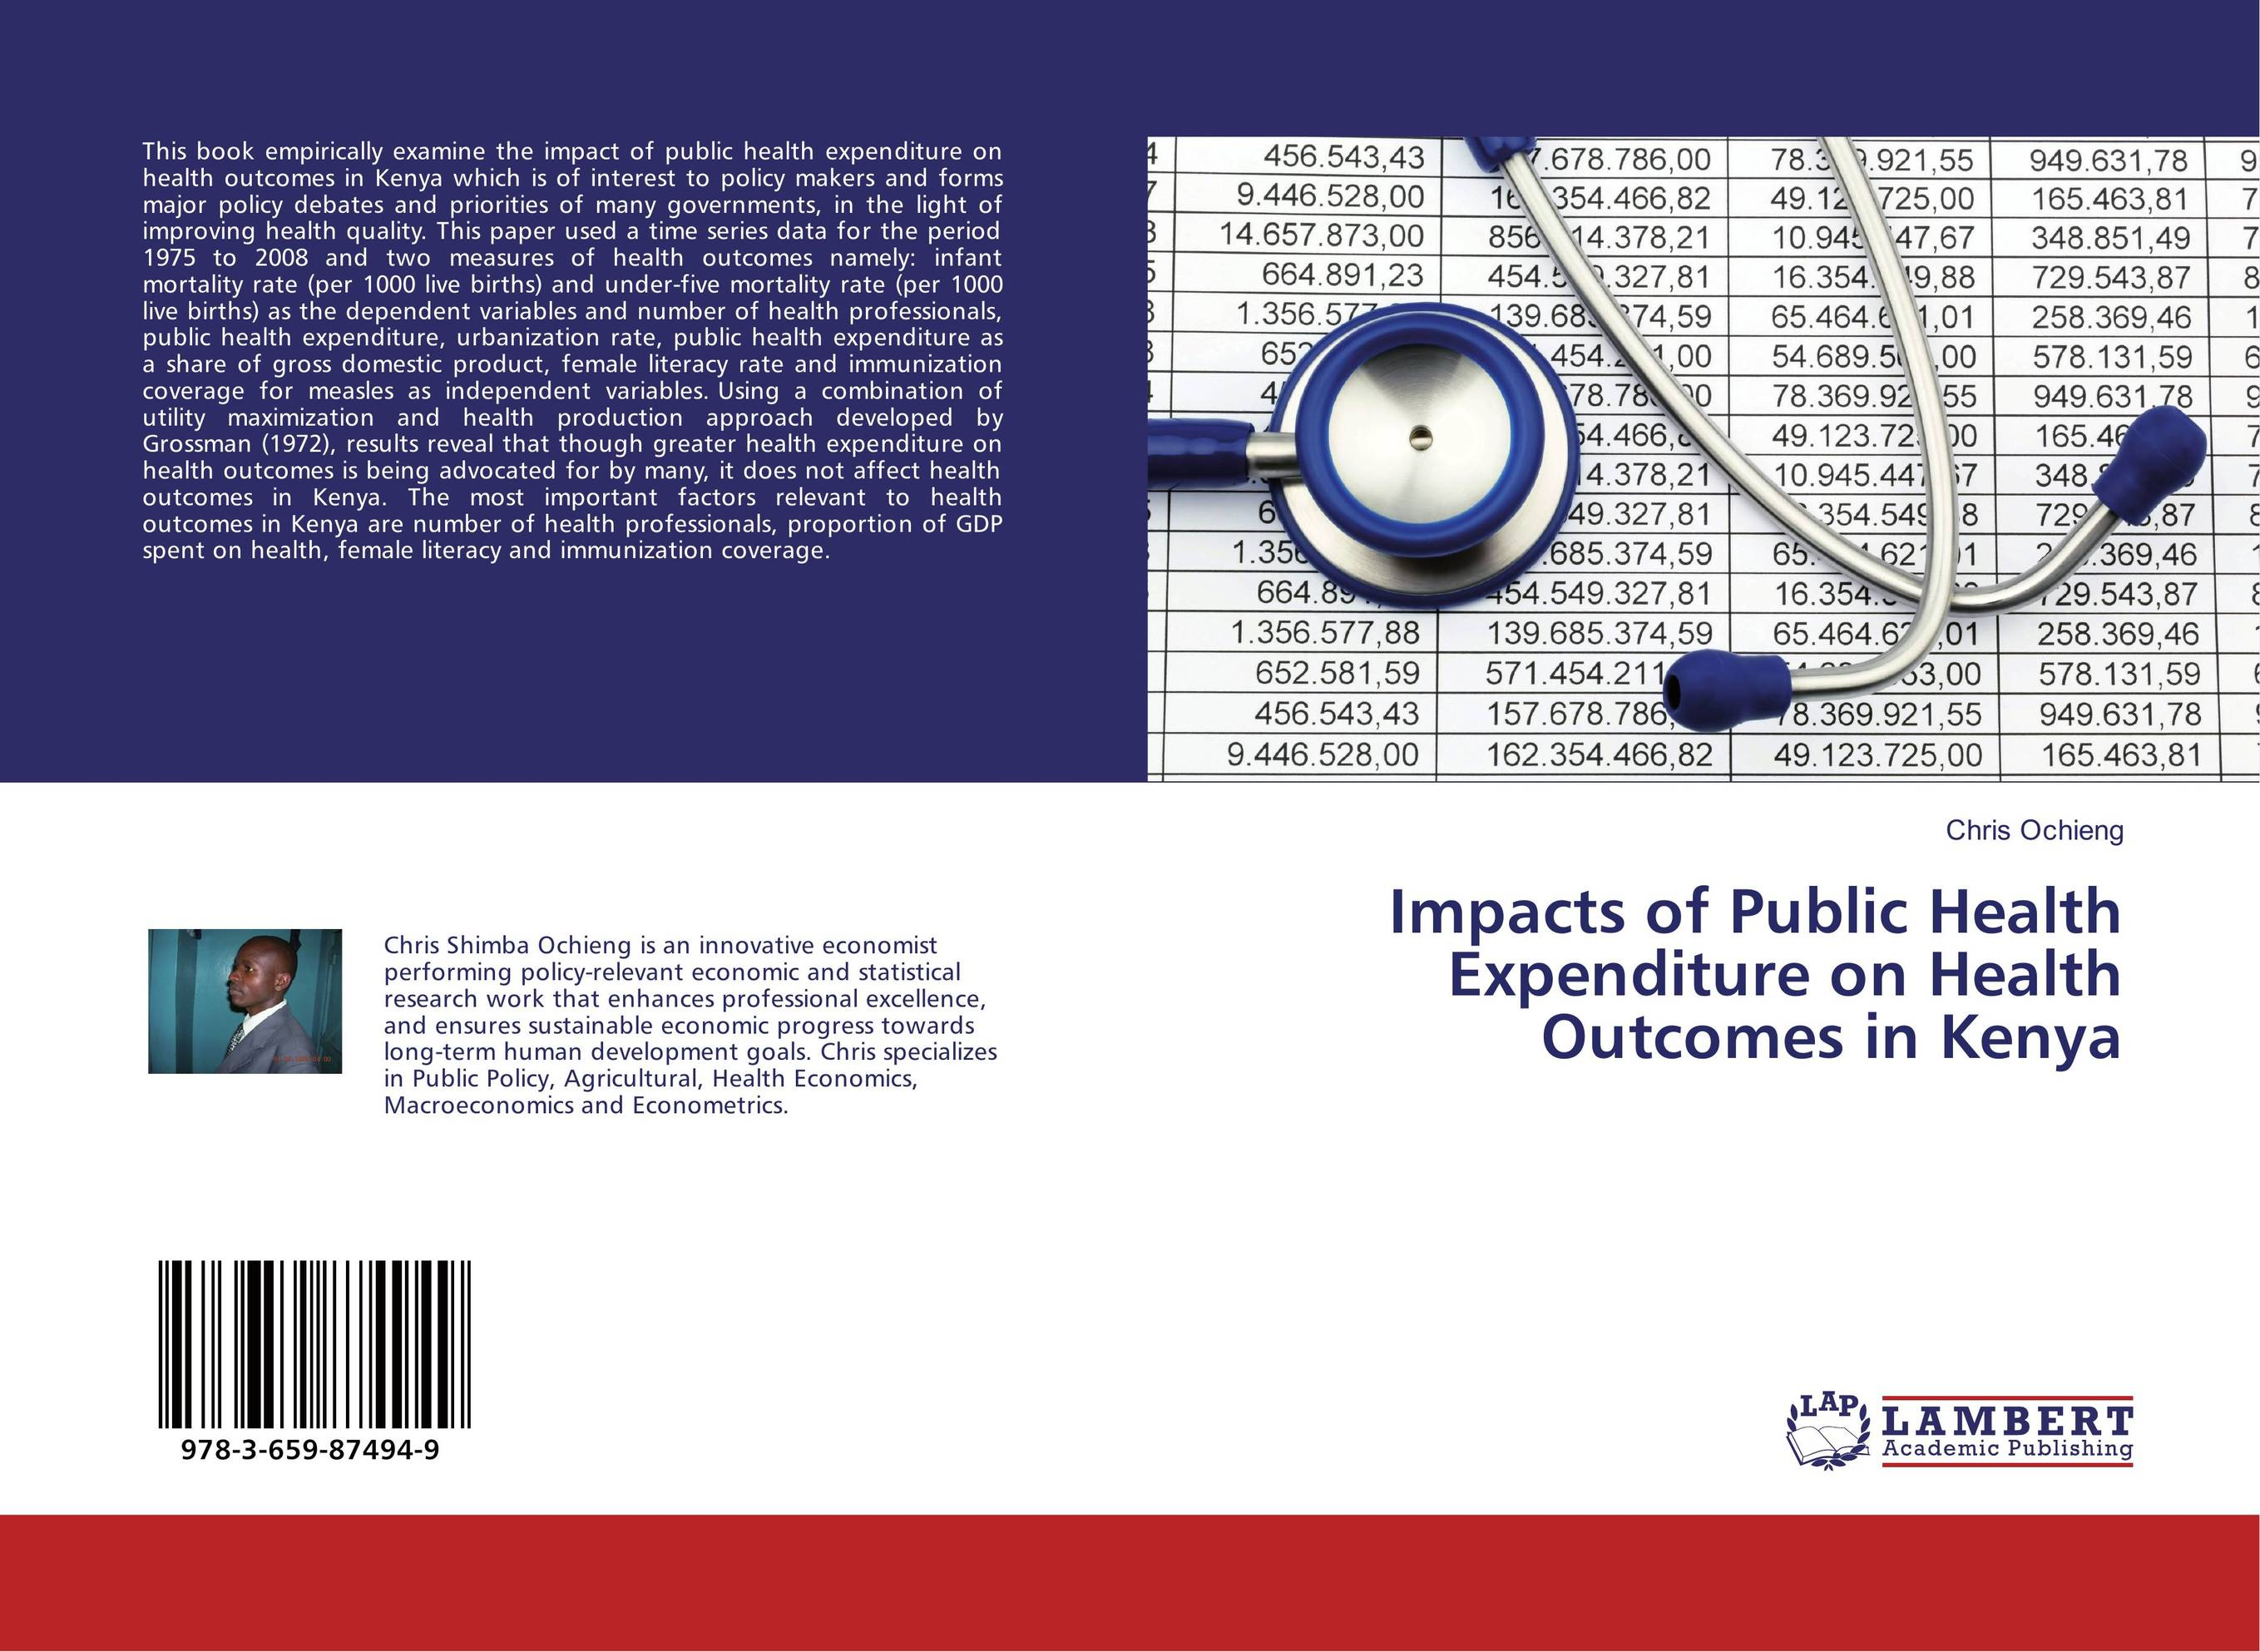 Impacts of Public Health Expenditure on Health Outcomes in Kenya poonam mahajan and ajay mahajan concepts in public health dentistry